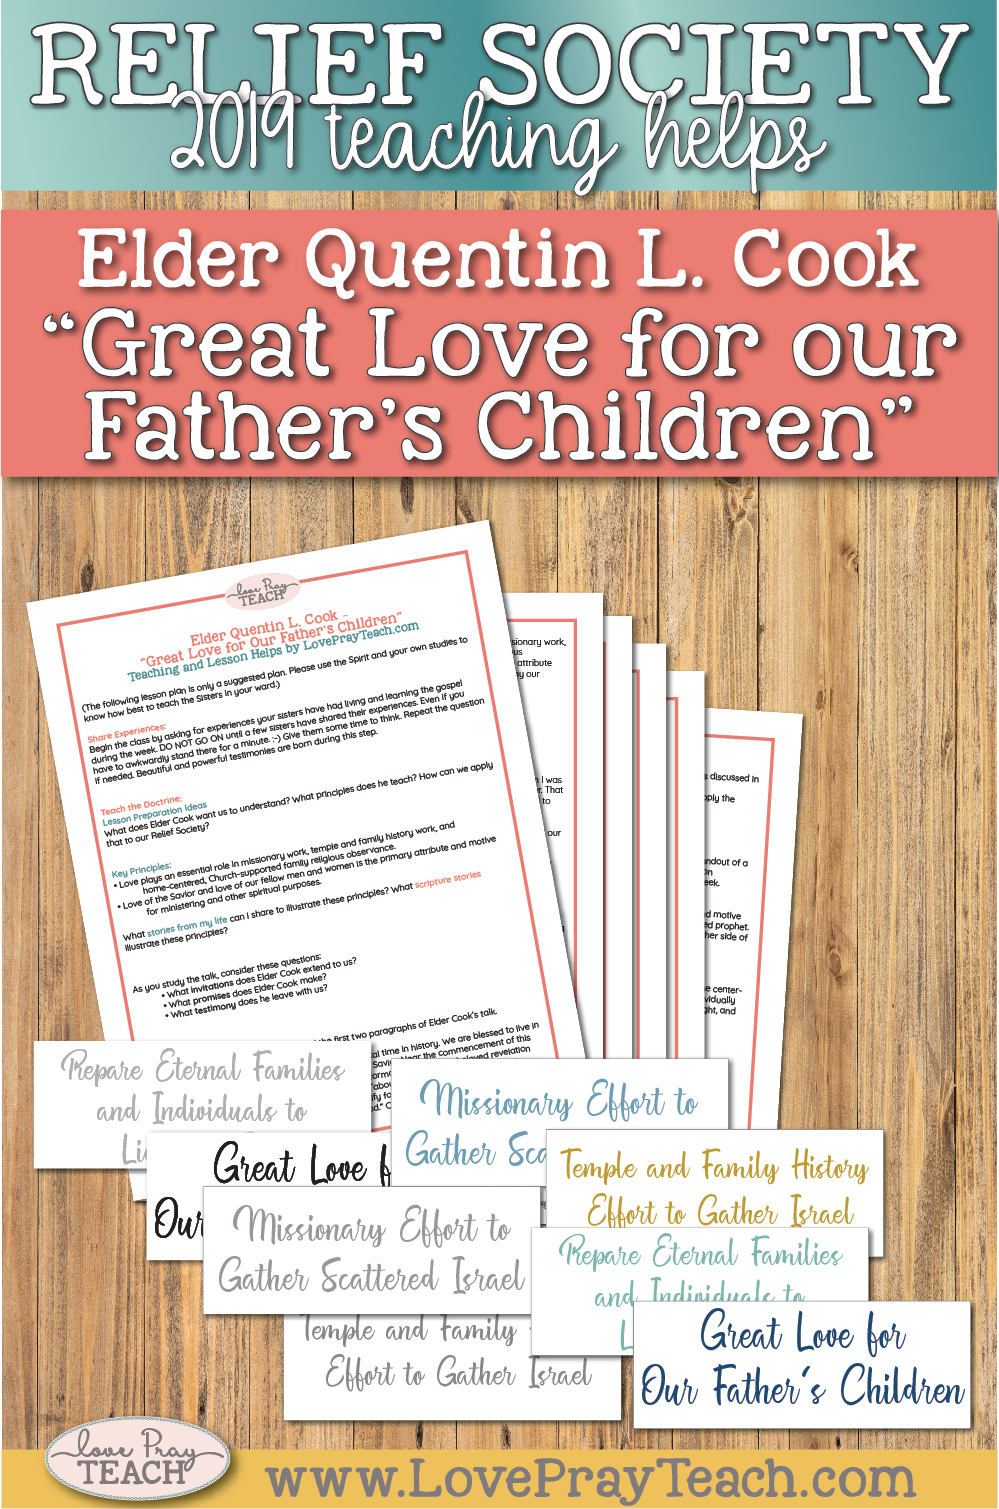 """Elder Quentin L. Cook """"Great Love for our Father's Children"""" April 2019 General Conference Lesson Helps for Relief Society www.LovePrayTeach.com"""